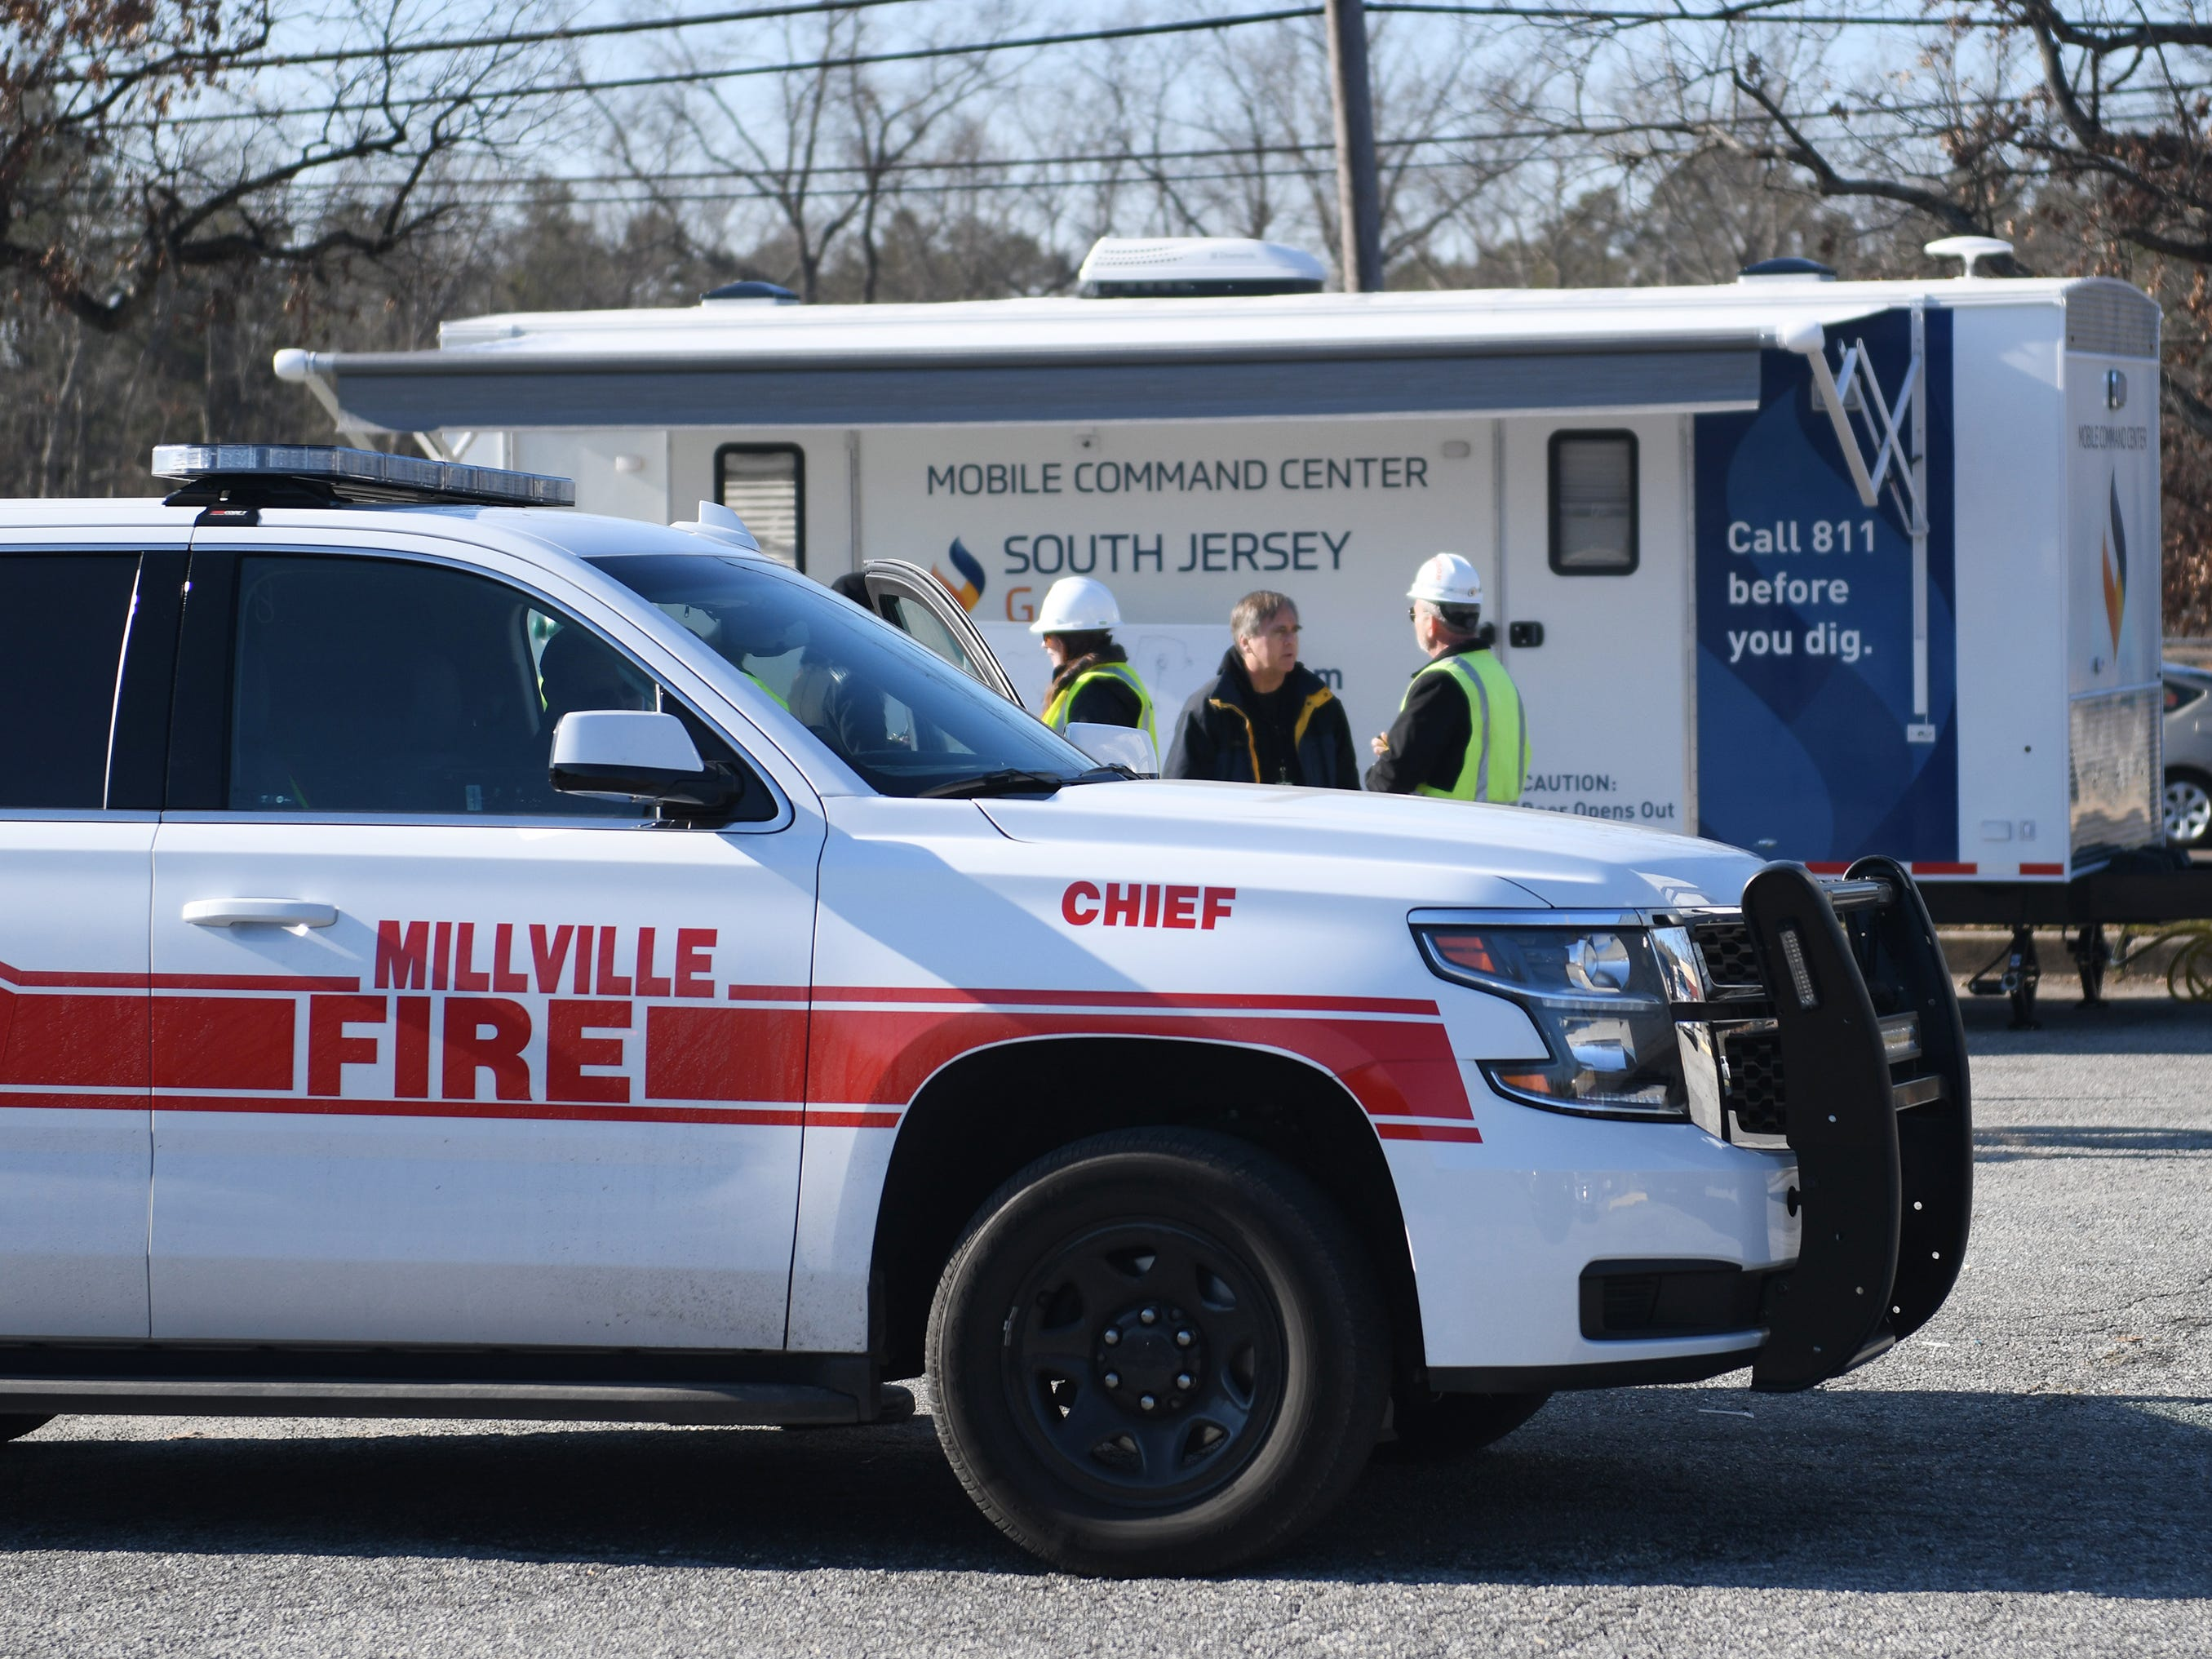 South Jersey Gas conducted a gas leak drill on the 1700 block of North 2nd Street in Millville. Members of the fire and police department were on hand to assist with the simulation on Tuesday, December 11, 2018.